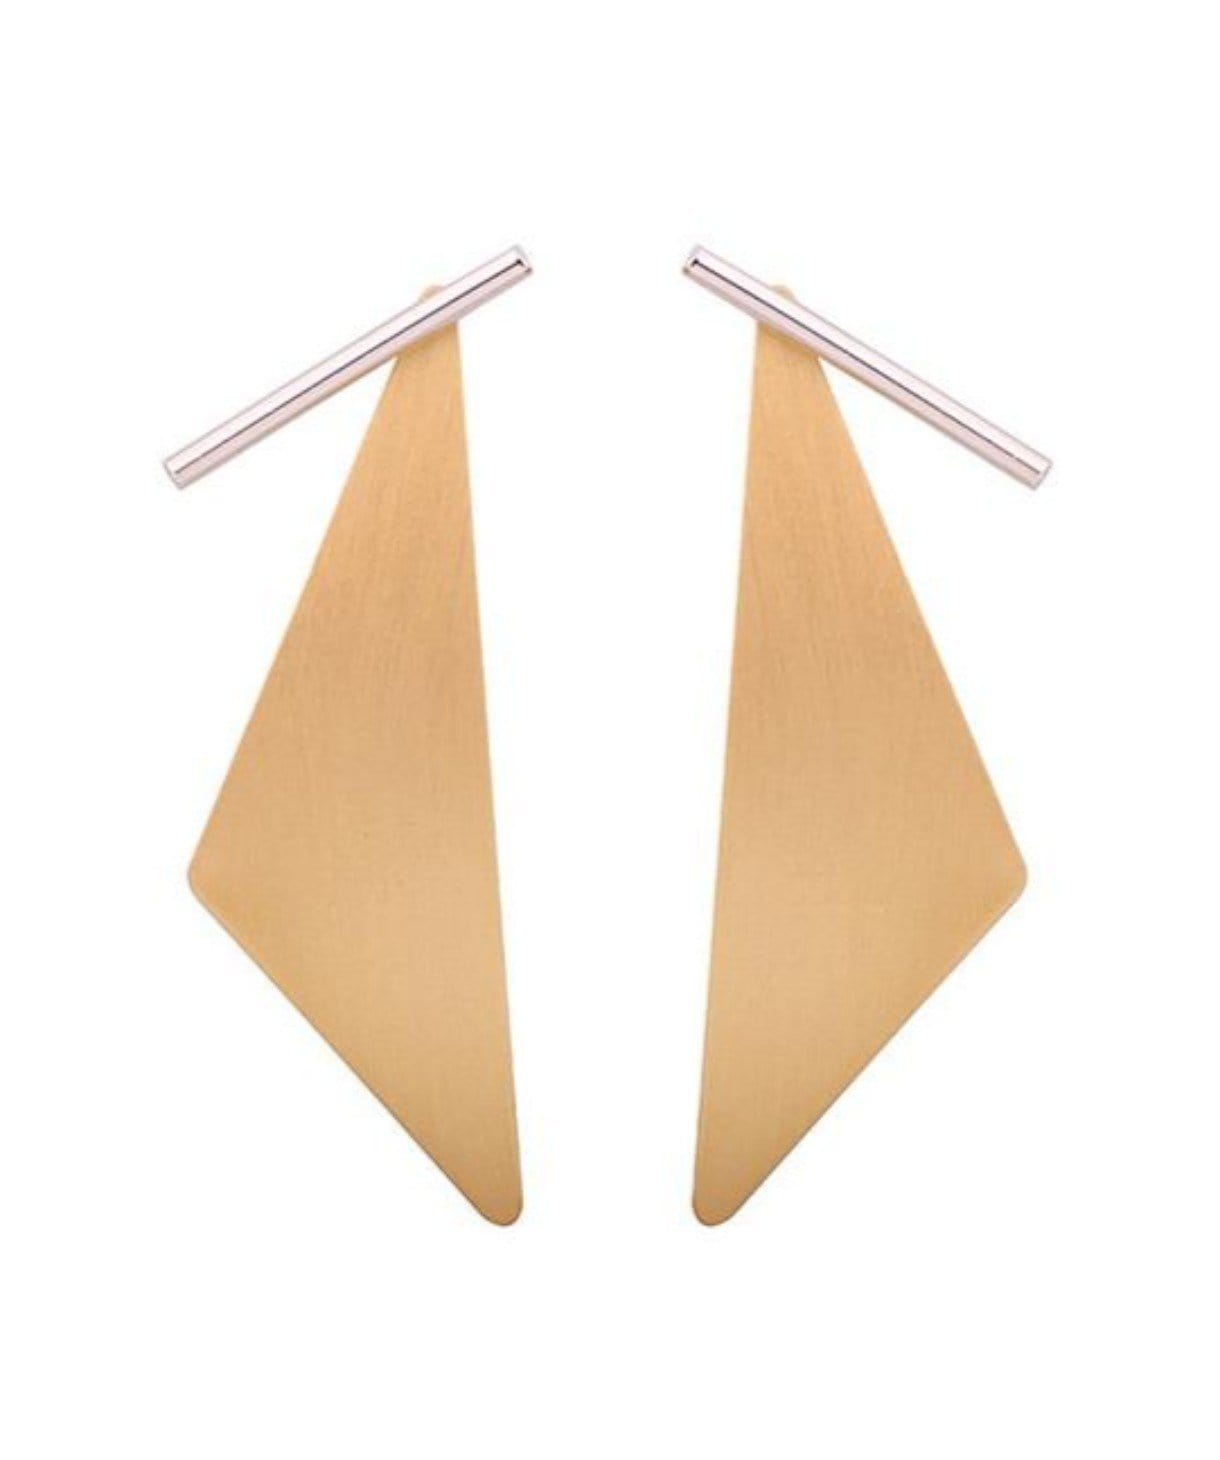 Geometric Statement Earrings - Uptownie